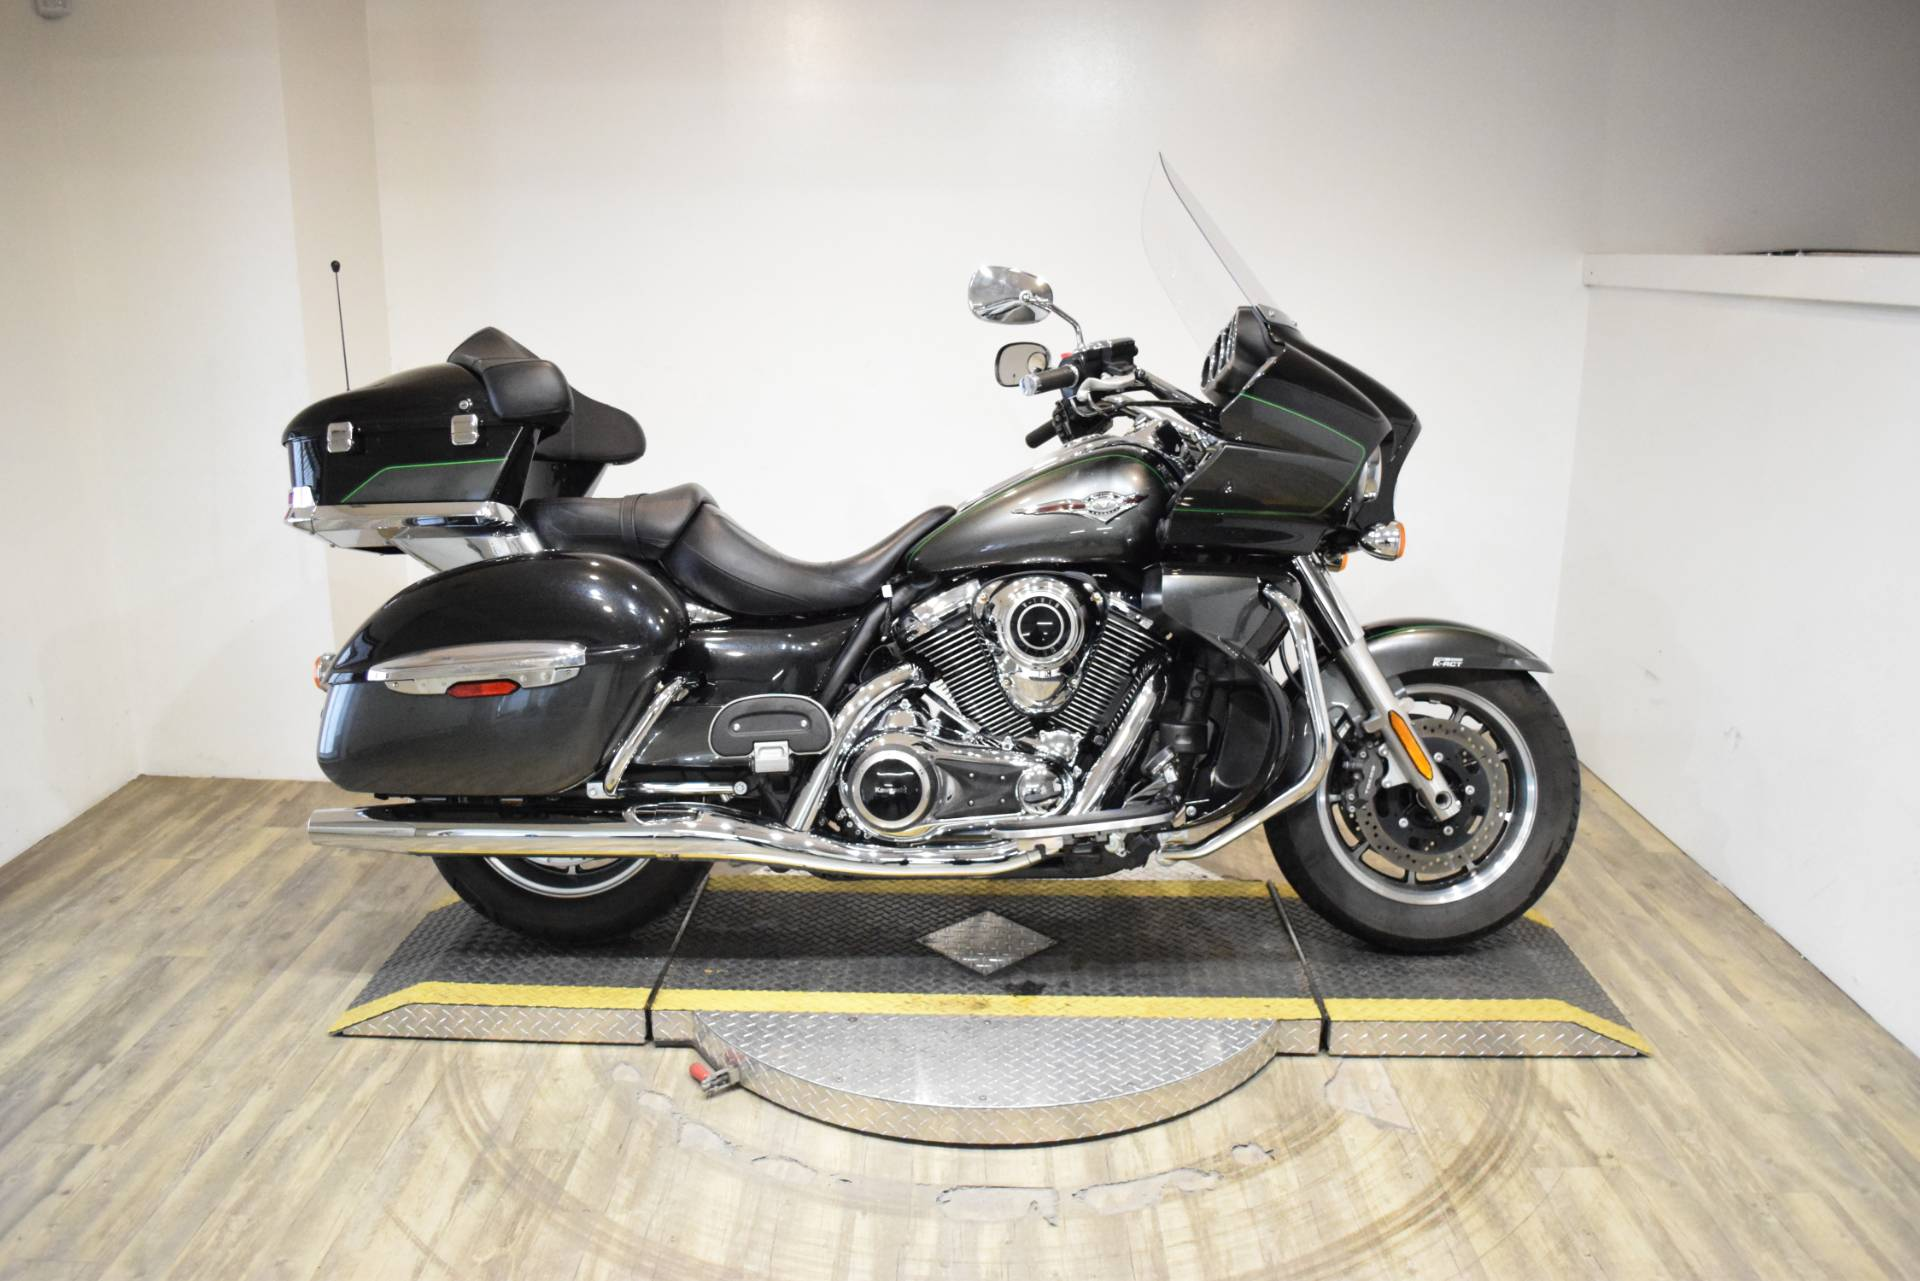 2017 Kawasaki Vulcan 1700 Voyager ABS in Wauconda, Illinois - Photo 1